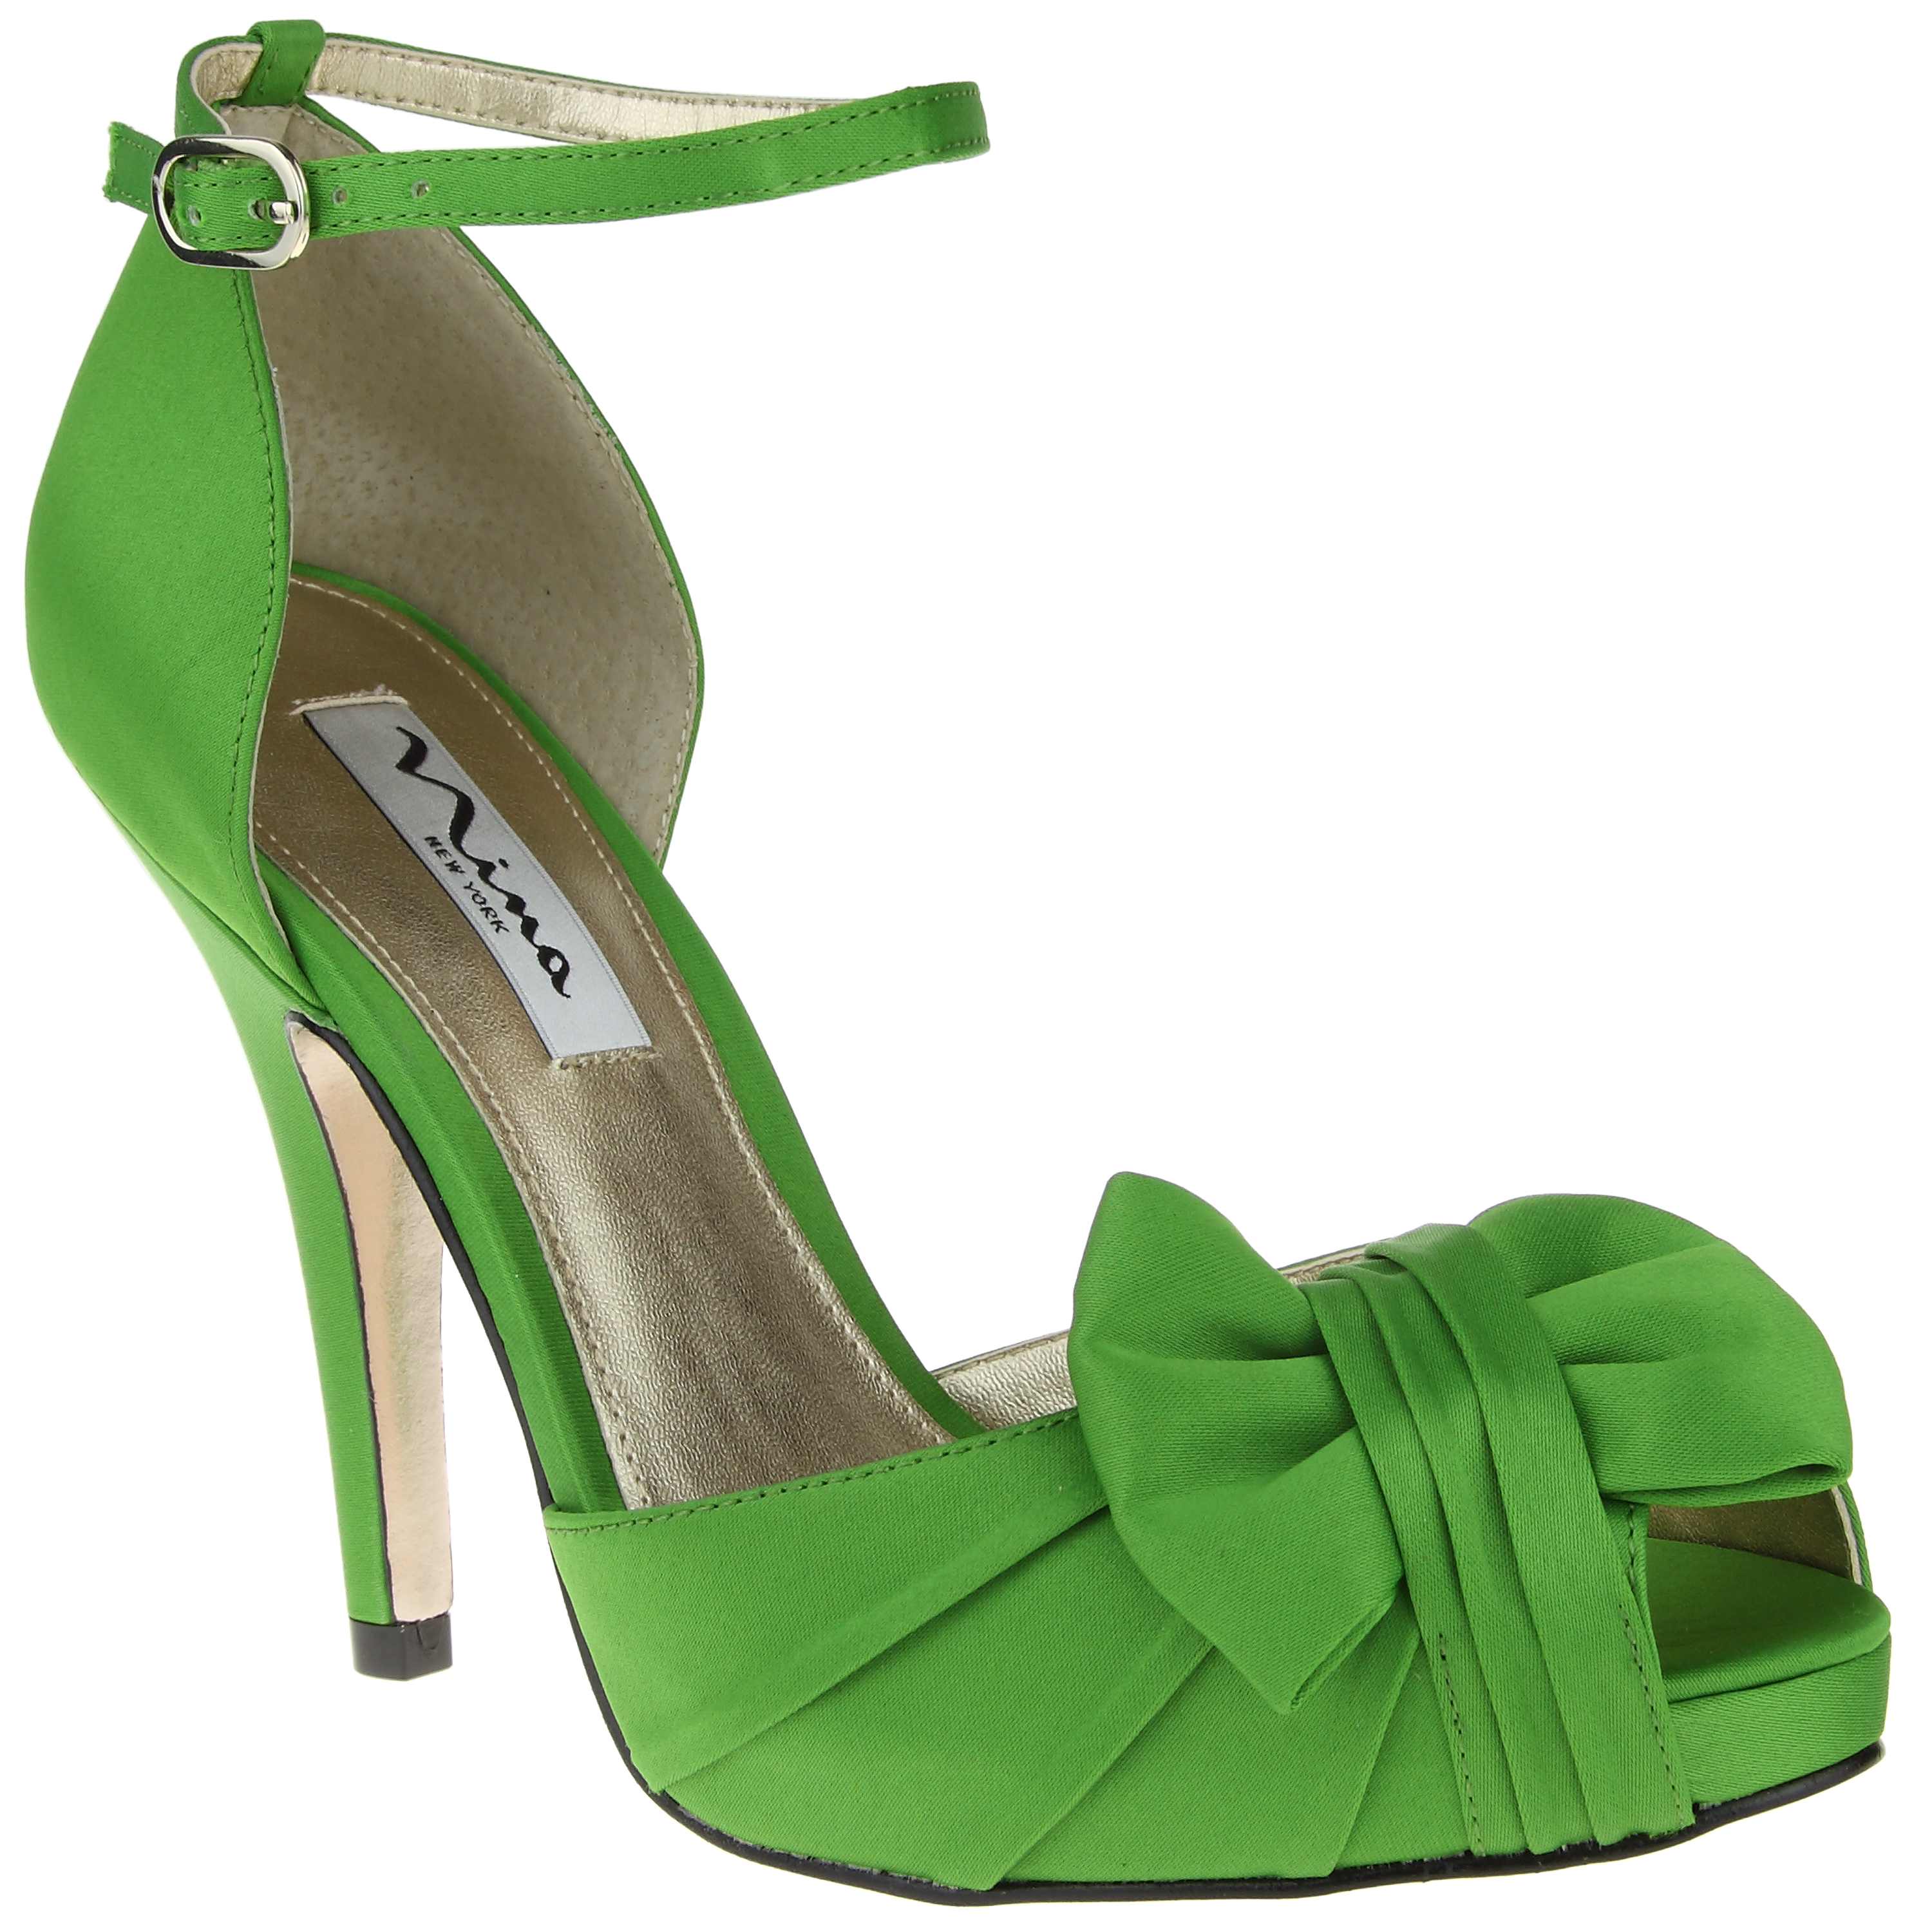 Green Nina Shoes ($ - $): 30 of items - Shop Green Nina Shoes from ALL your favorite stores & find HUGE SAVINGS up to 80% off Green Nina Shoes, including GREAT DEALS like Nina Shoes | Green Nina Dress Shoes | Color: Green | Size: 8 ($).